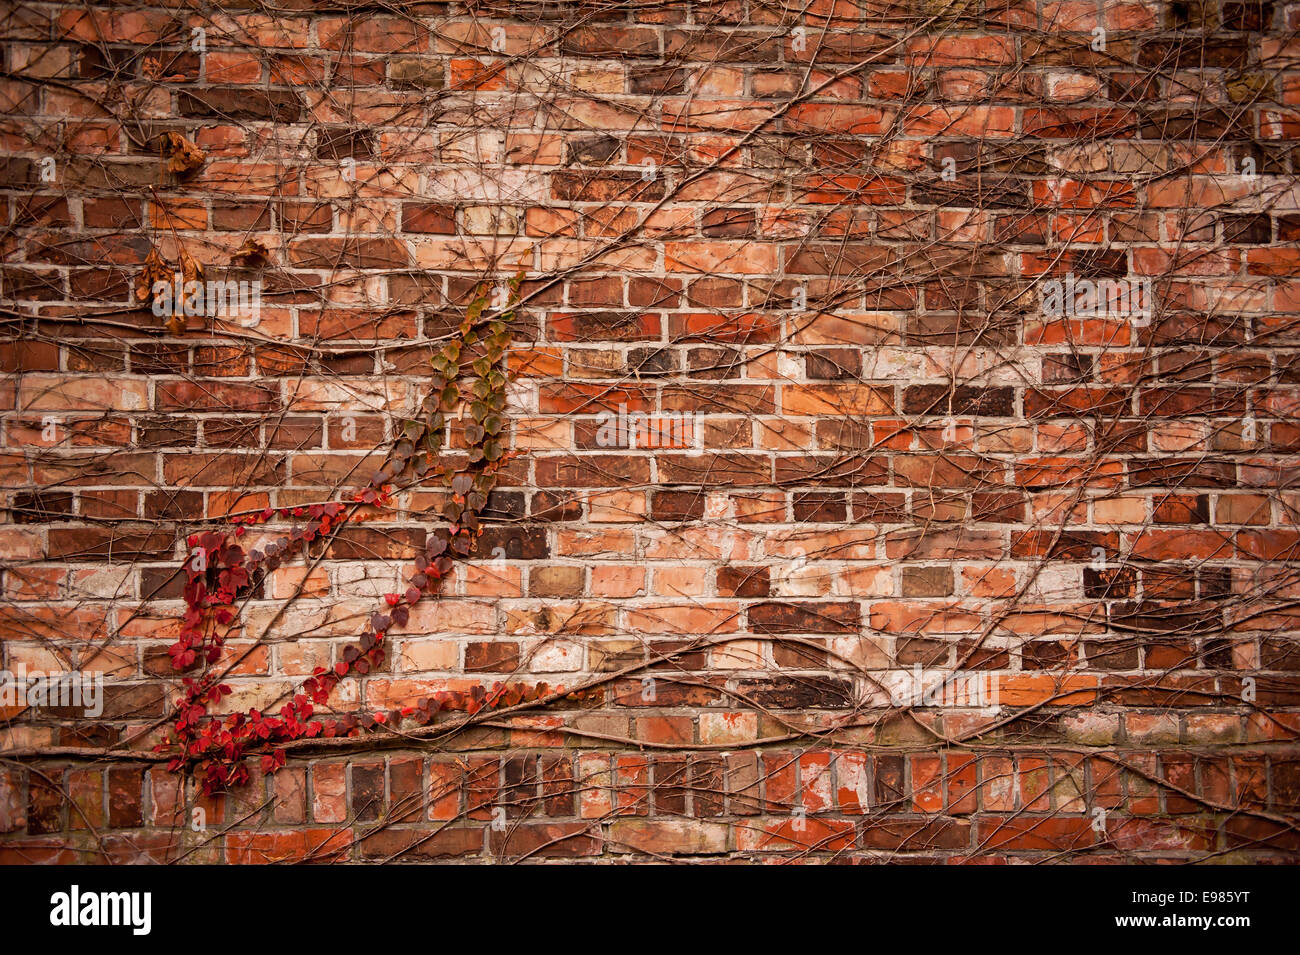 Red ivy hedge climber on wall - Stock Image